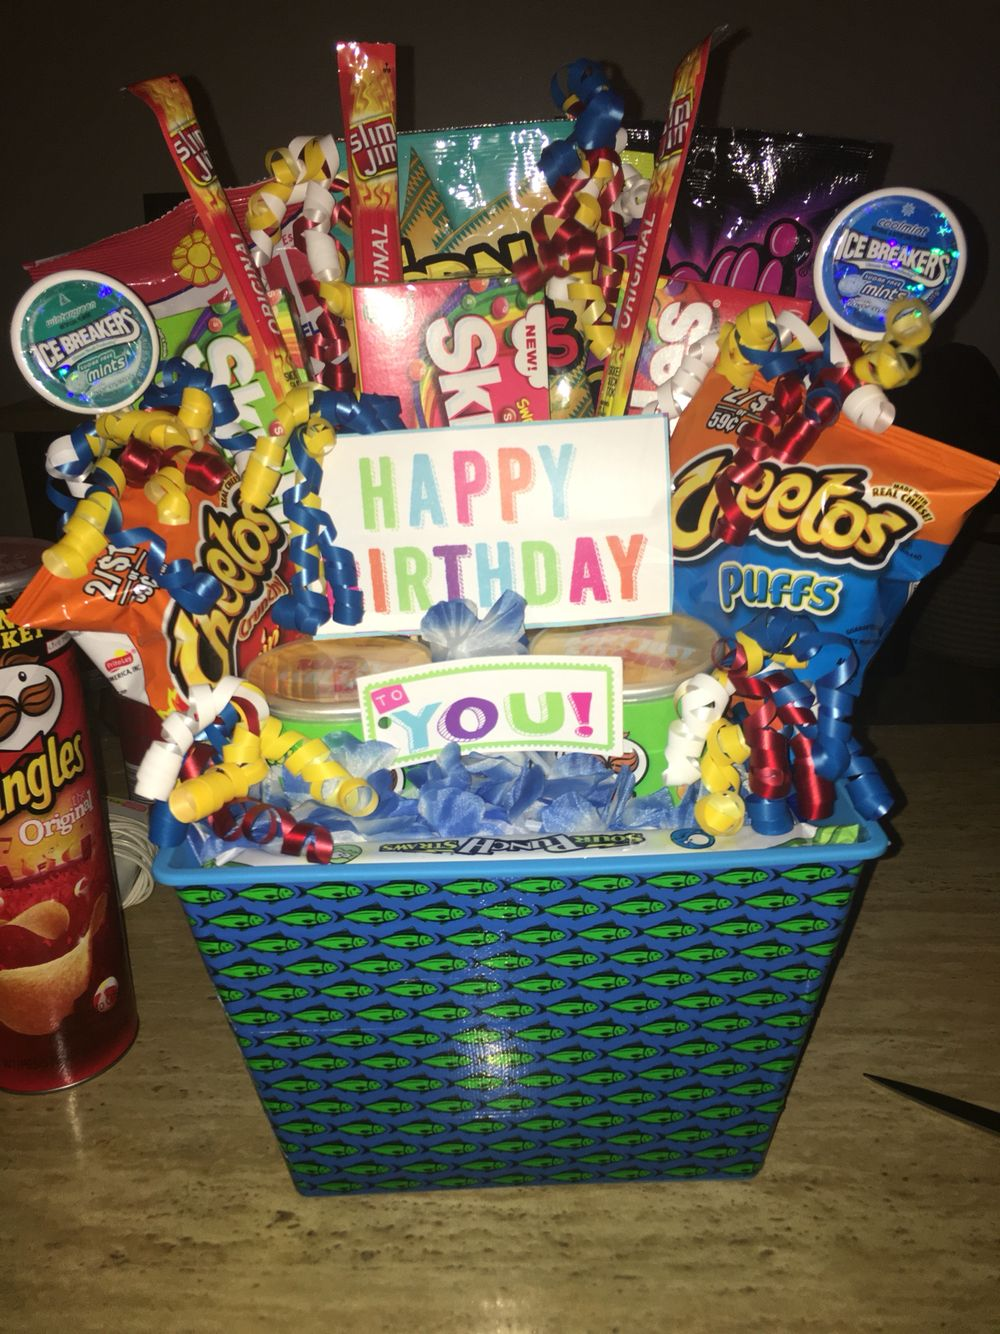 Birthday Gift For Him I Used Decorative Tape The Basket Snacks Bbq Skewers Packaging Foam Blocks And Hawaiian Leis To Cover